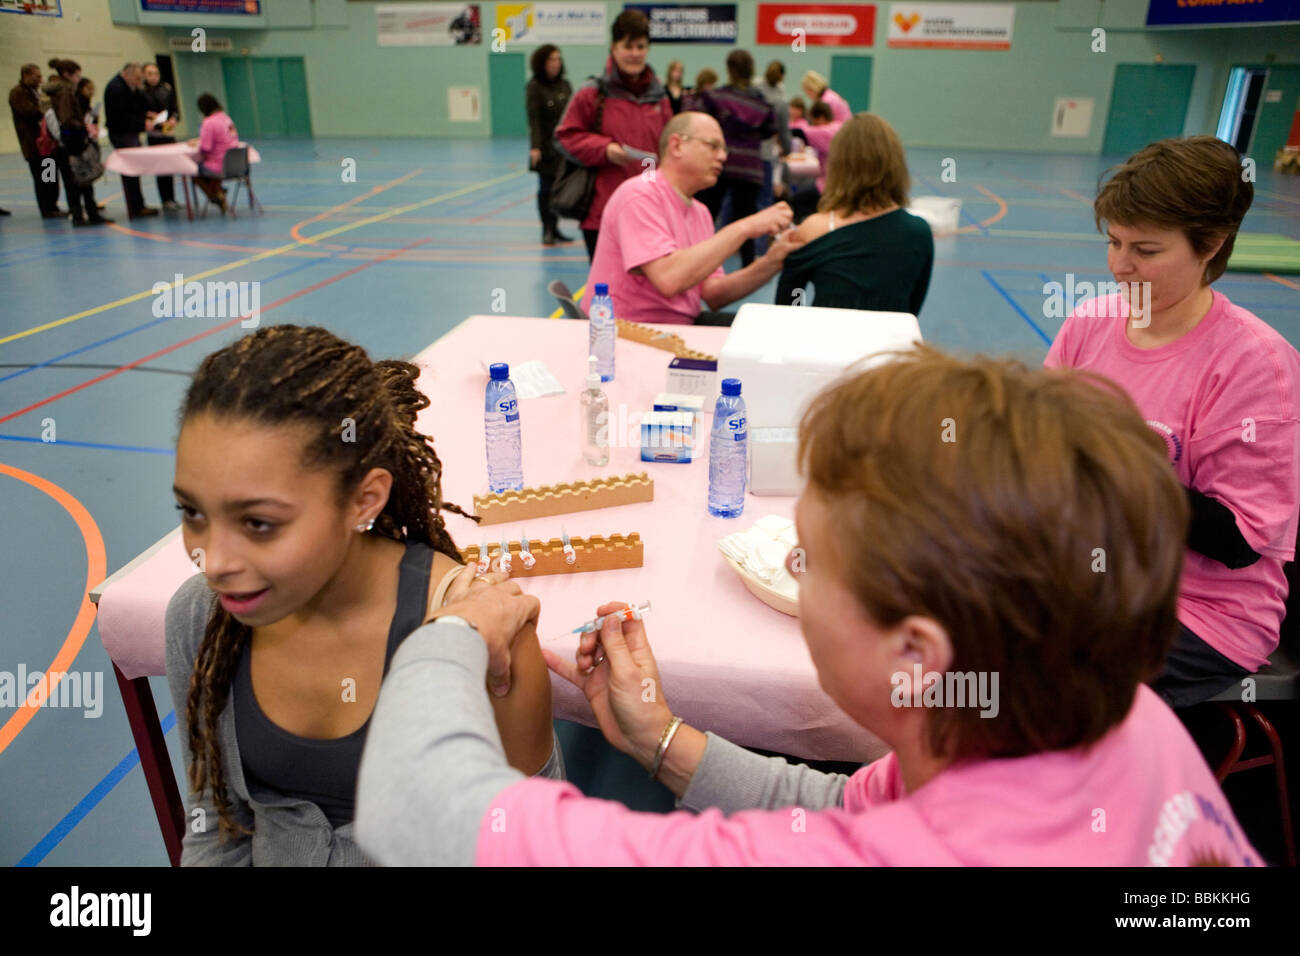 nationwide vaccination campaign against cervical cancer The vaccin has not proven to be affective Many mothers are Stock Photo